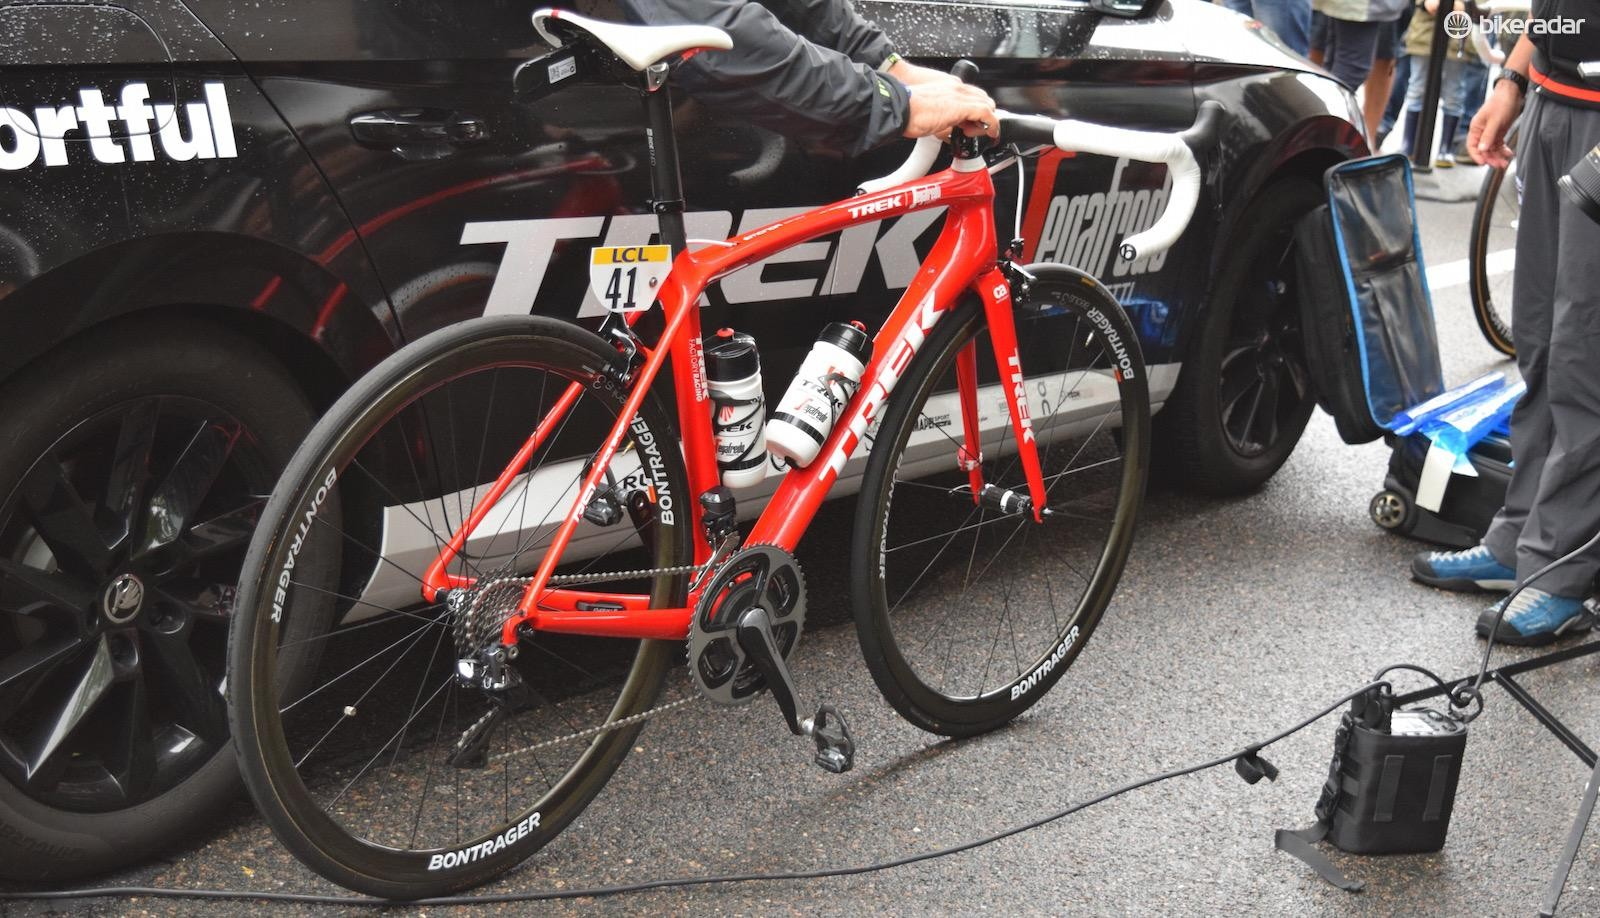 The new Trek Emonda SLR is being raced at the Dauphiné